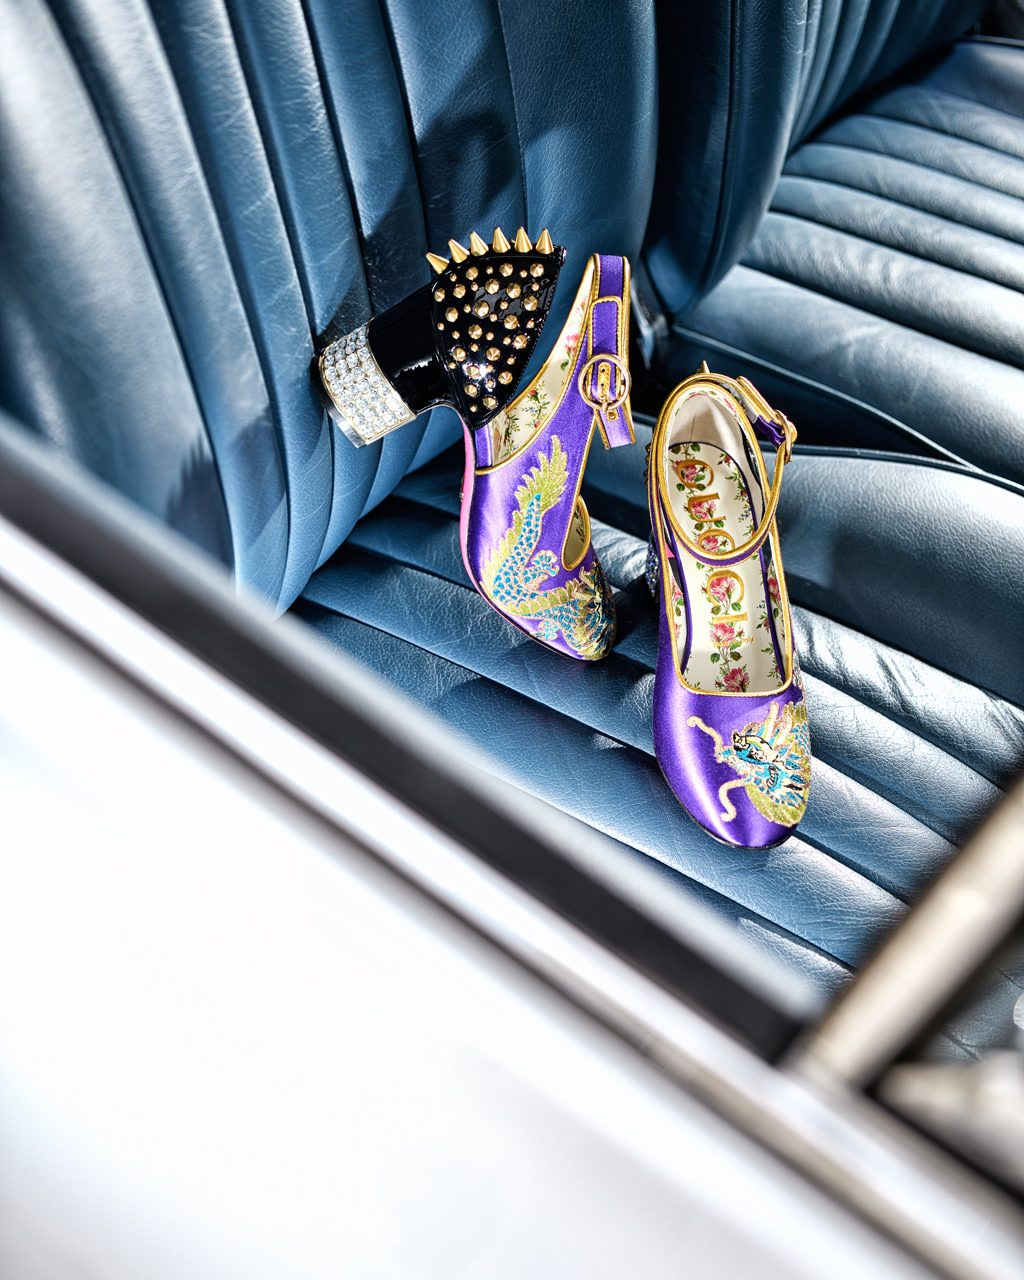 Sabine-Scheer-automotivephotography-stilllife-shoes-gucci-porsche